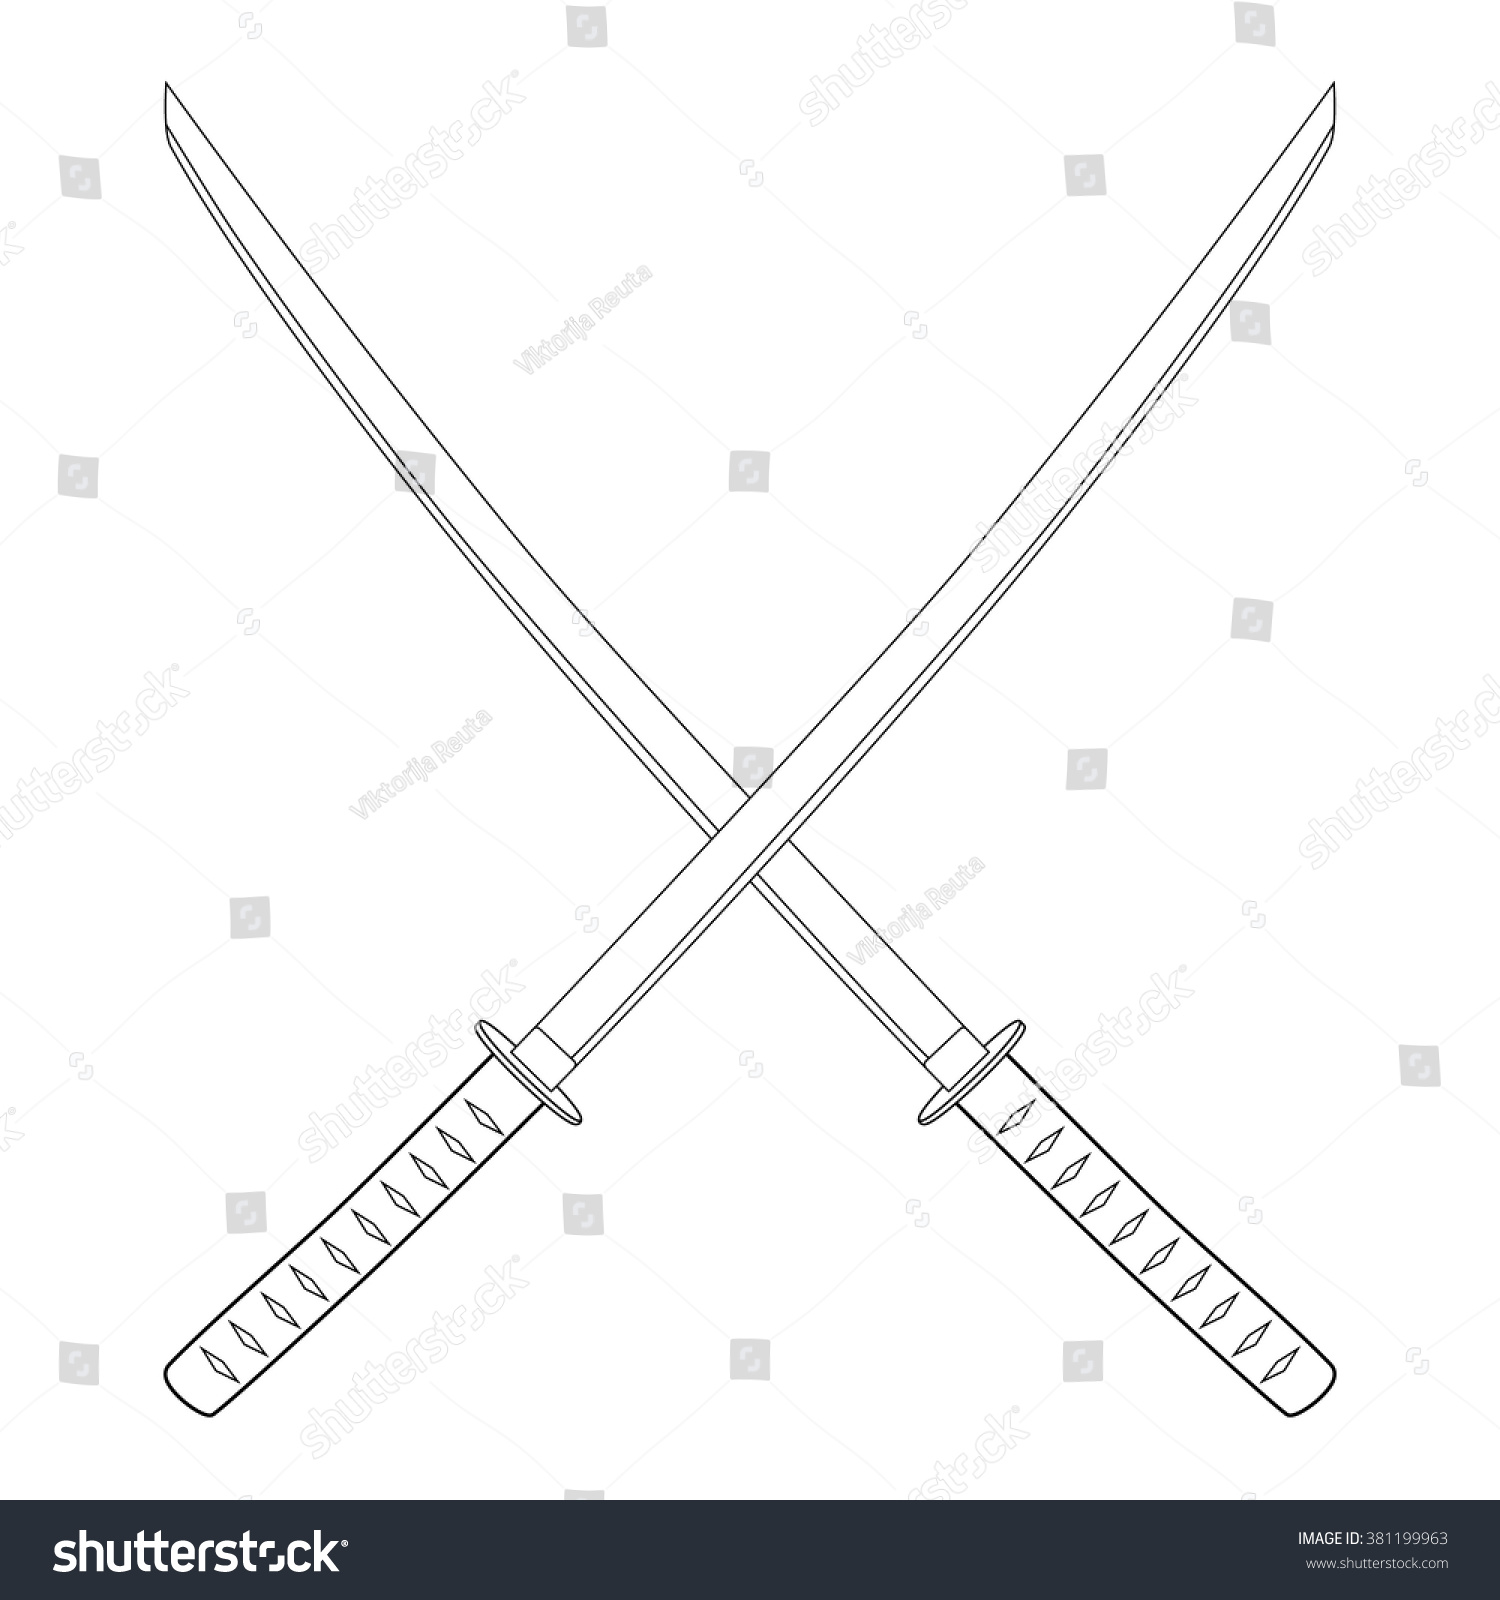 Vector Illustration Crossed Japanese Katana Swords Stock ...